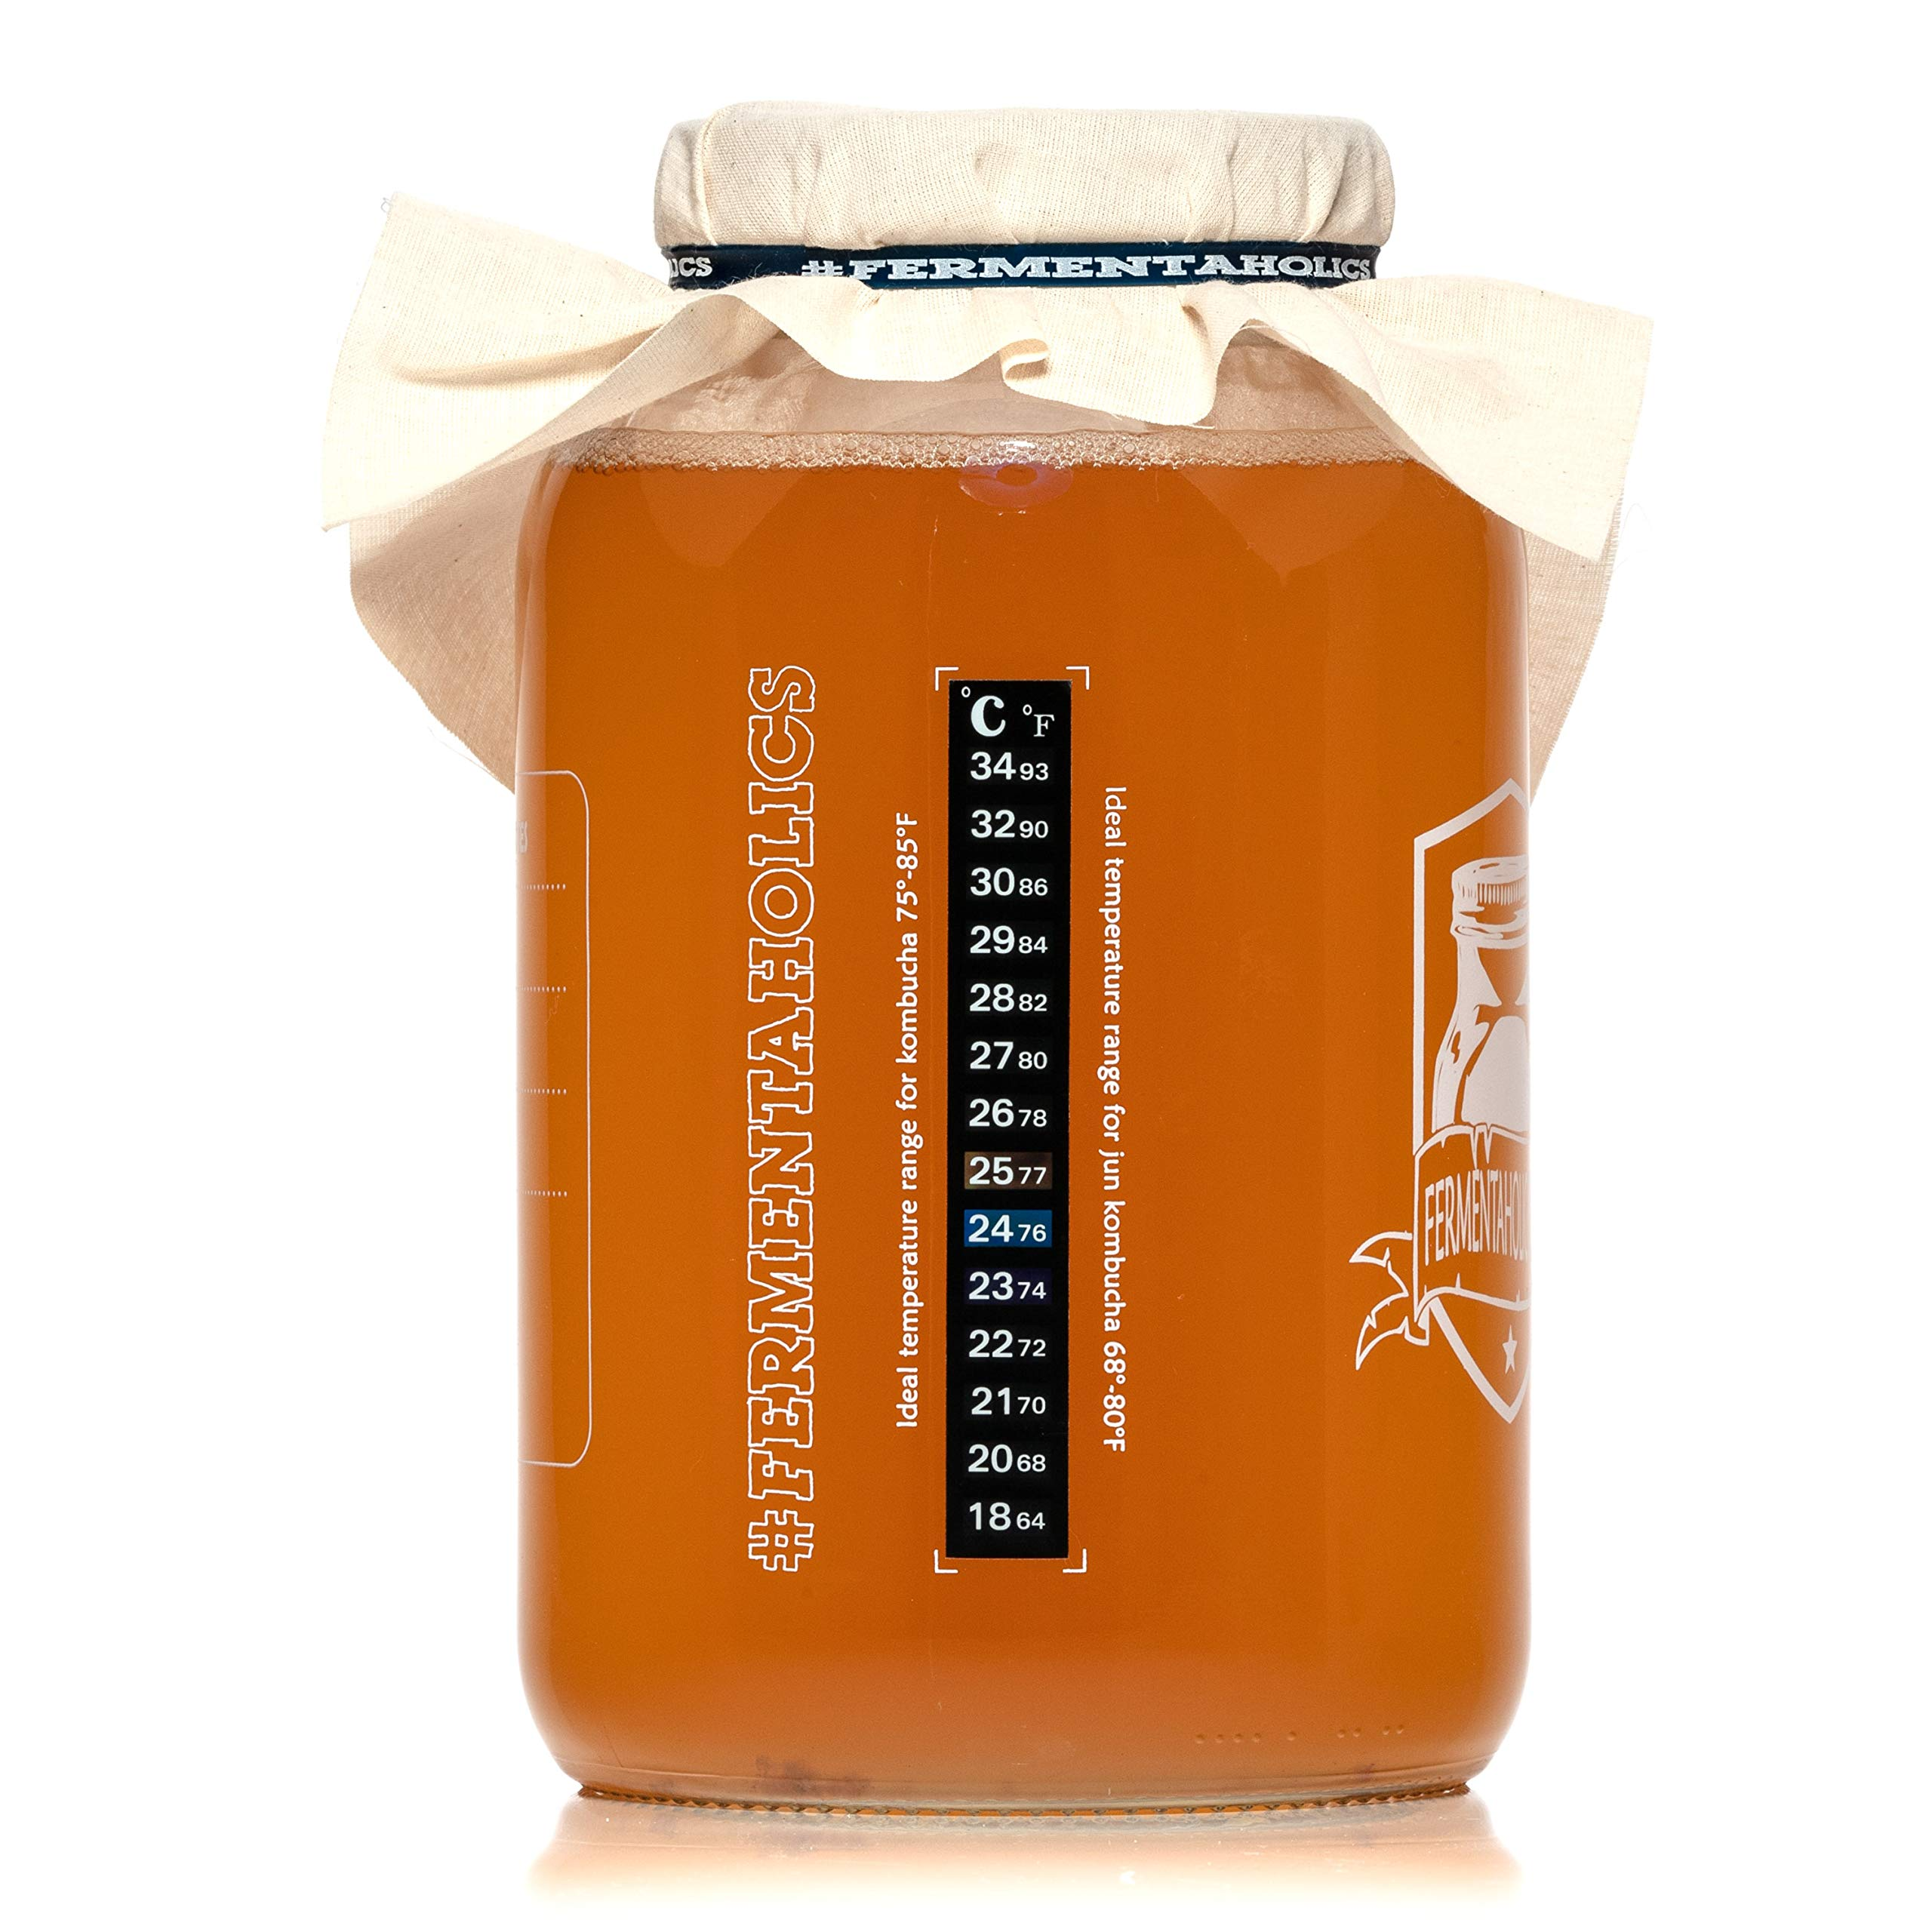 Fermentaholics Kombucha SCOBY (starter culture) + 1-Gallon Glass Fermenting Jar with Breathable Cover + Rubber Band + Adhesive Thermometer - Brew kombucha at Home - Detailed Instructions Included by Fermentaholics (Image #5)